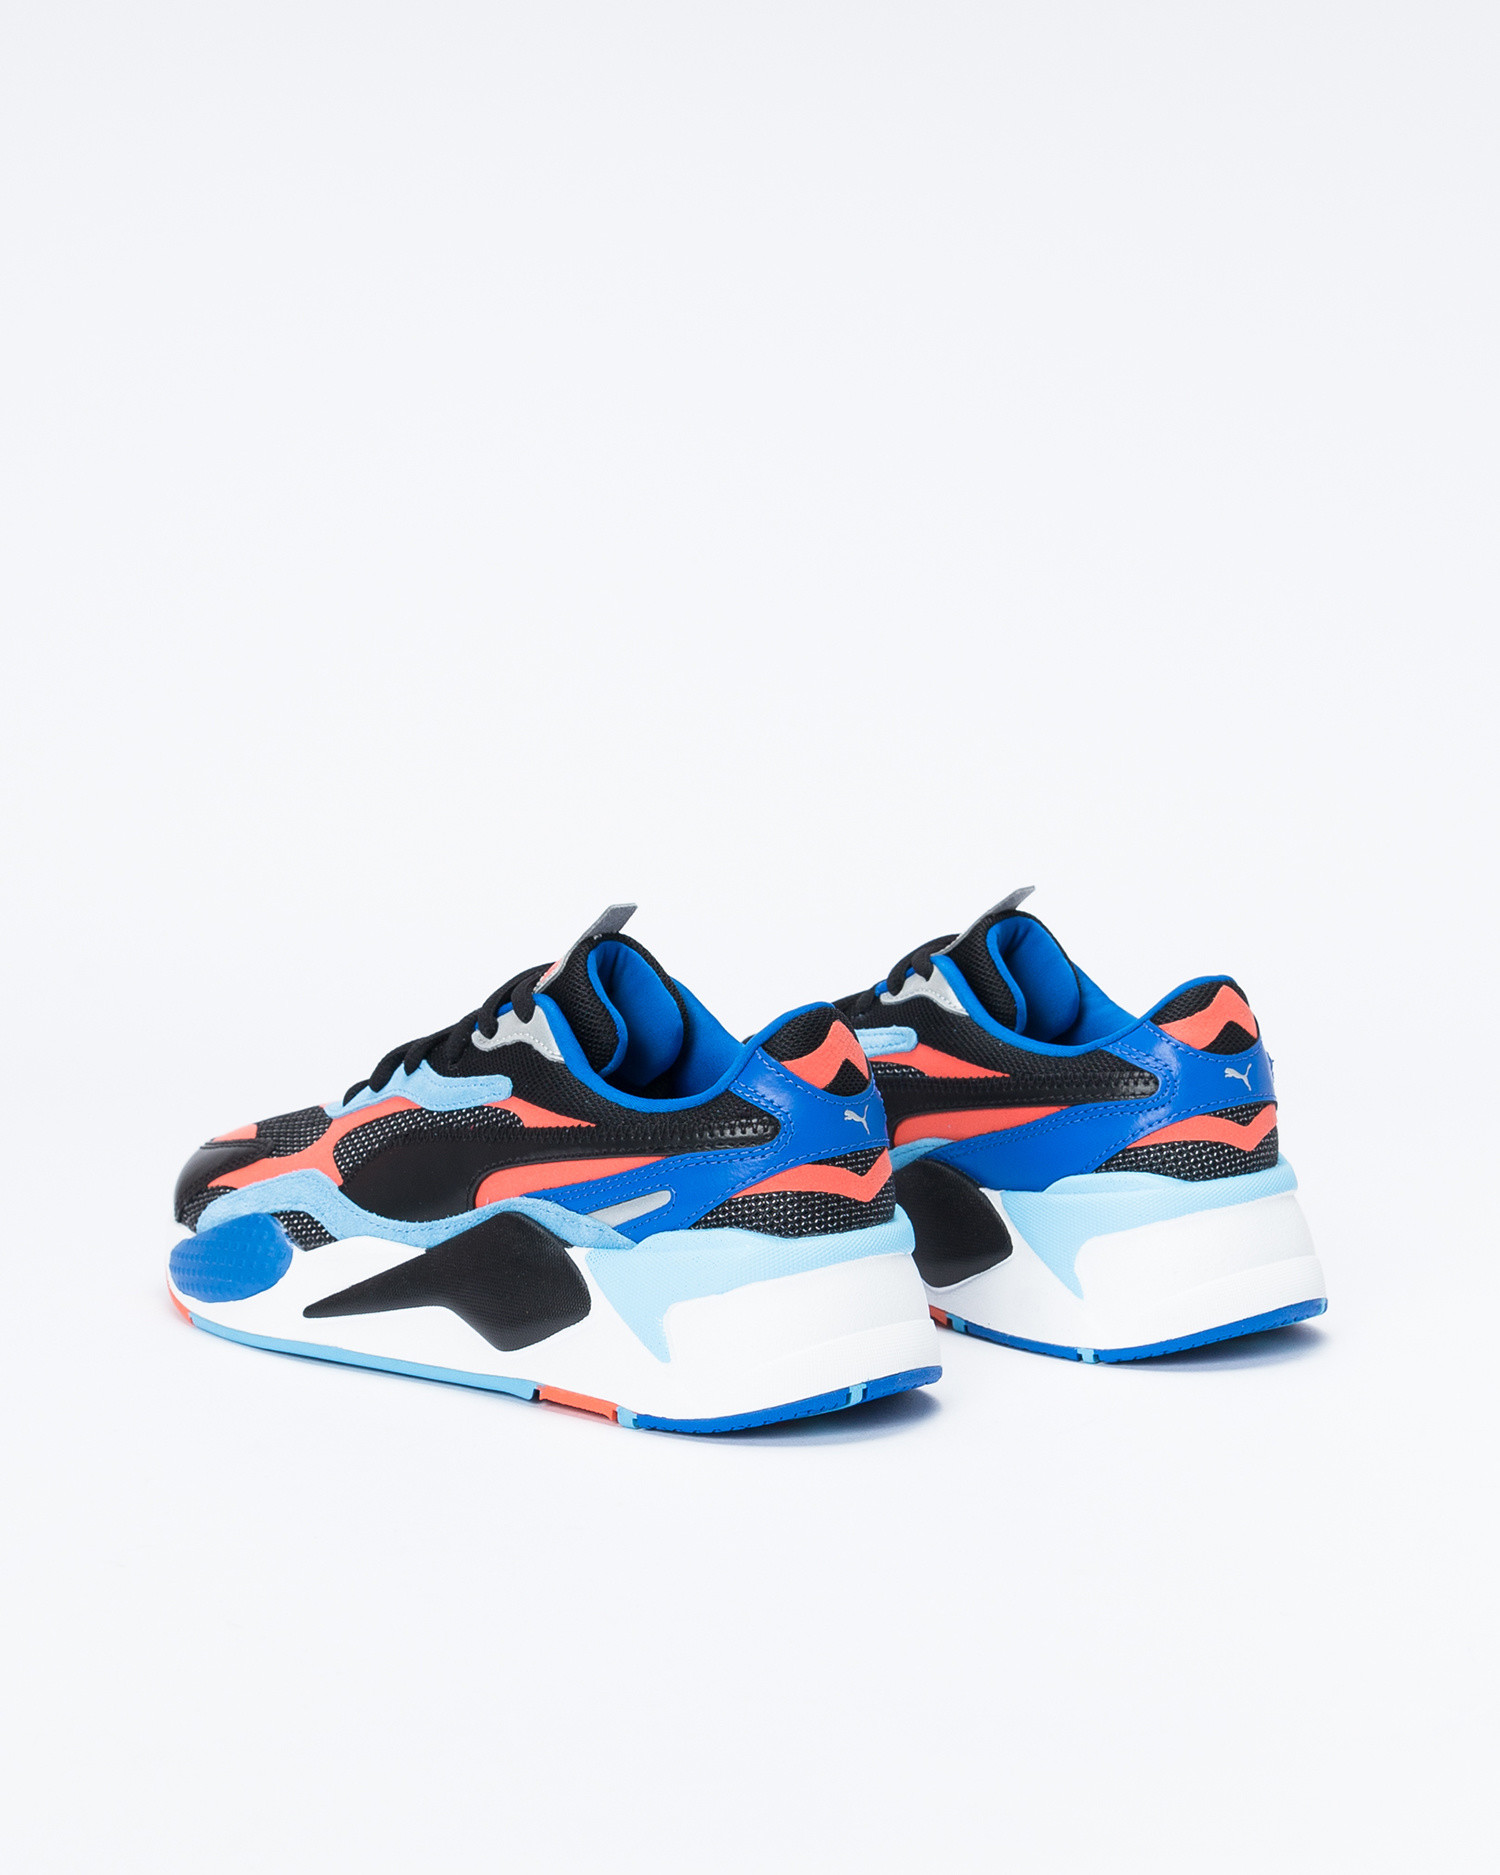 Puma RS-X ³ Level Up Black/Hot Coral